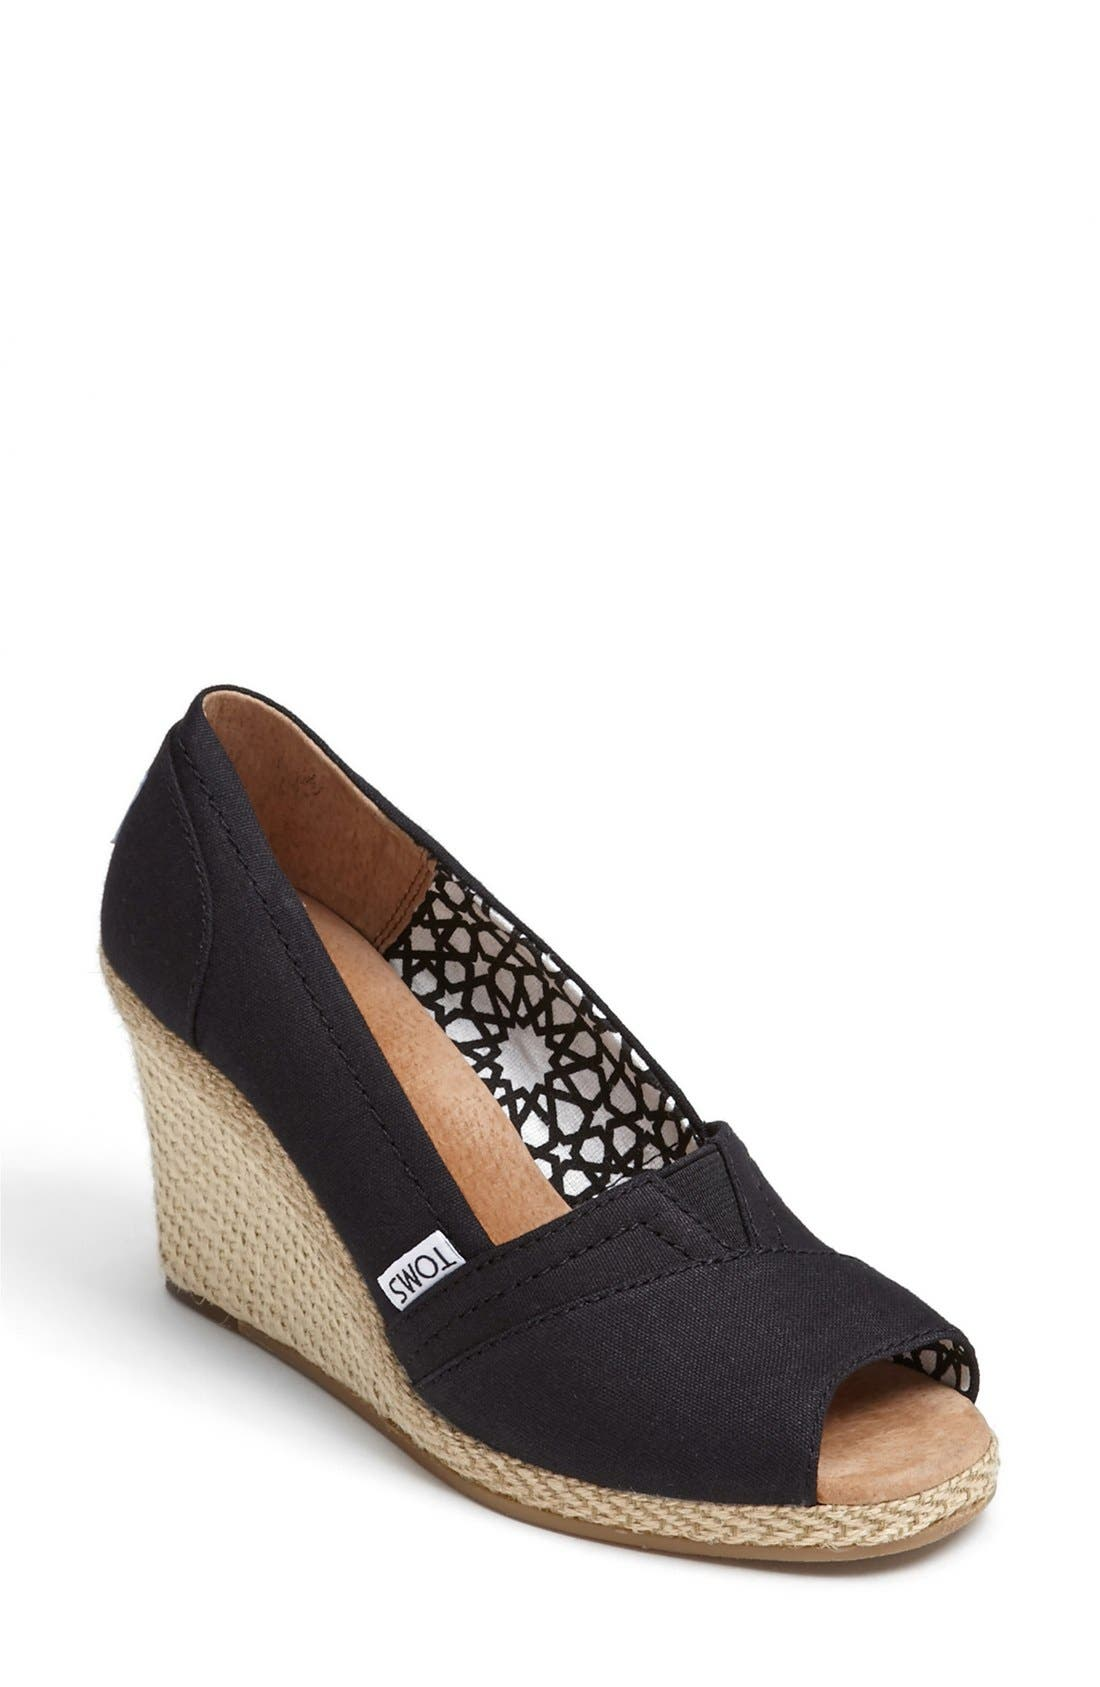 Main Image - TOMS 'Calypso' Canvas Wedge